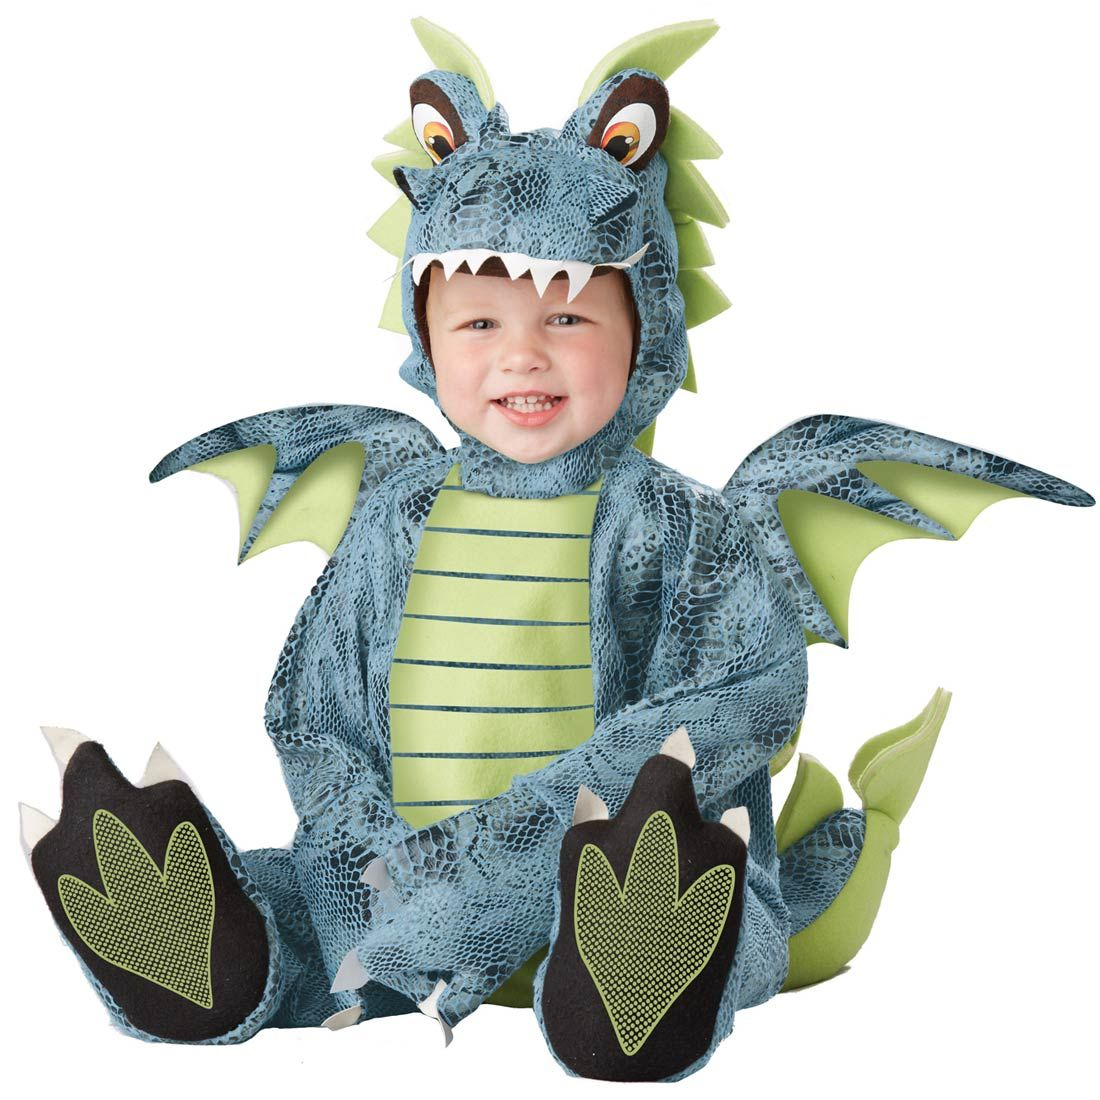 My future child will HATE me for putting them in awesome costumes ...